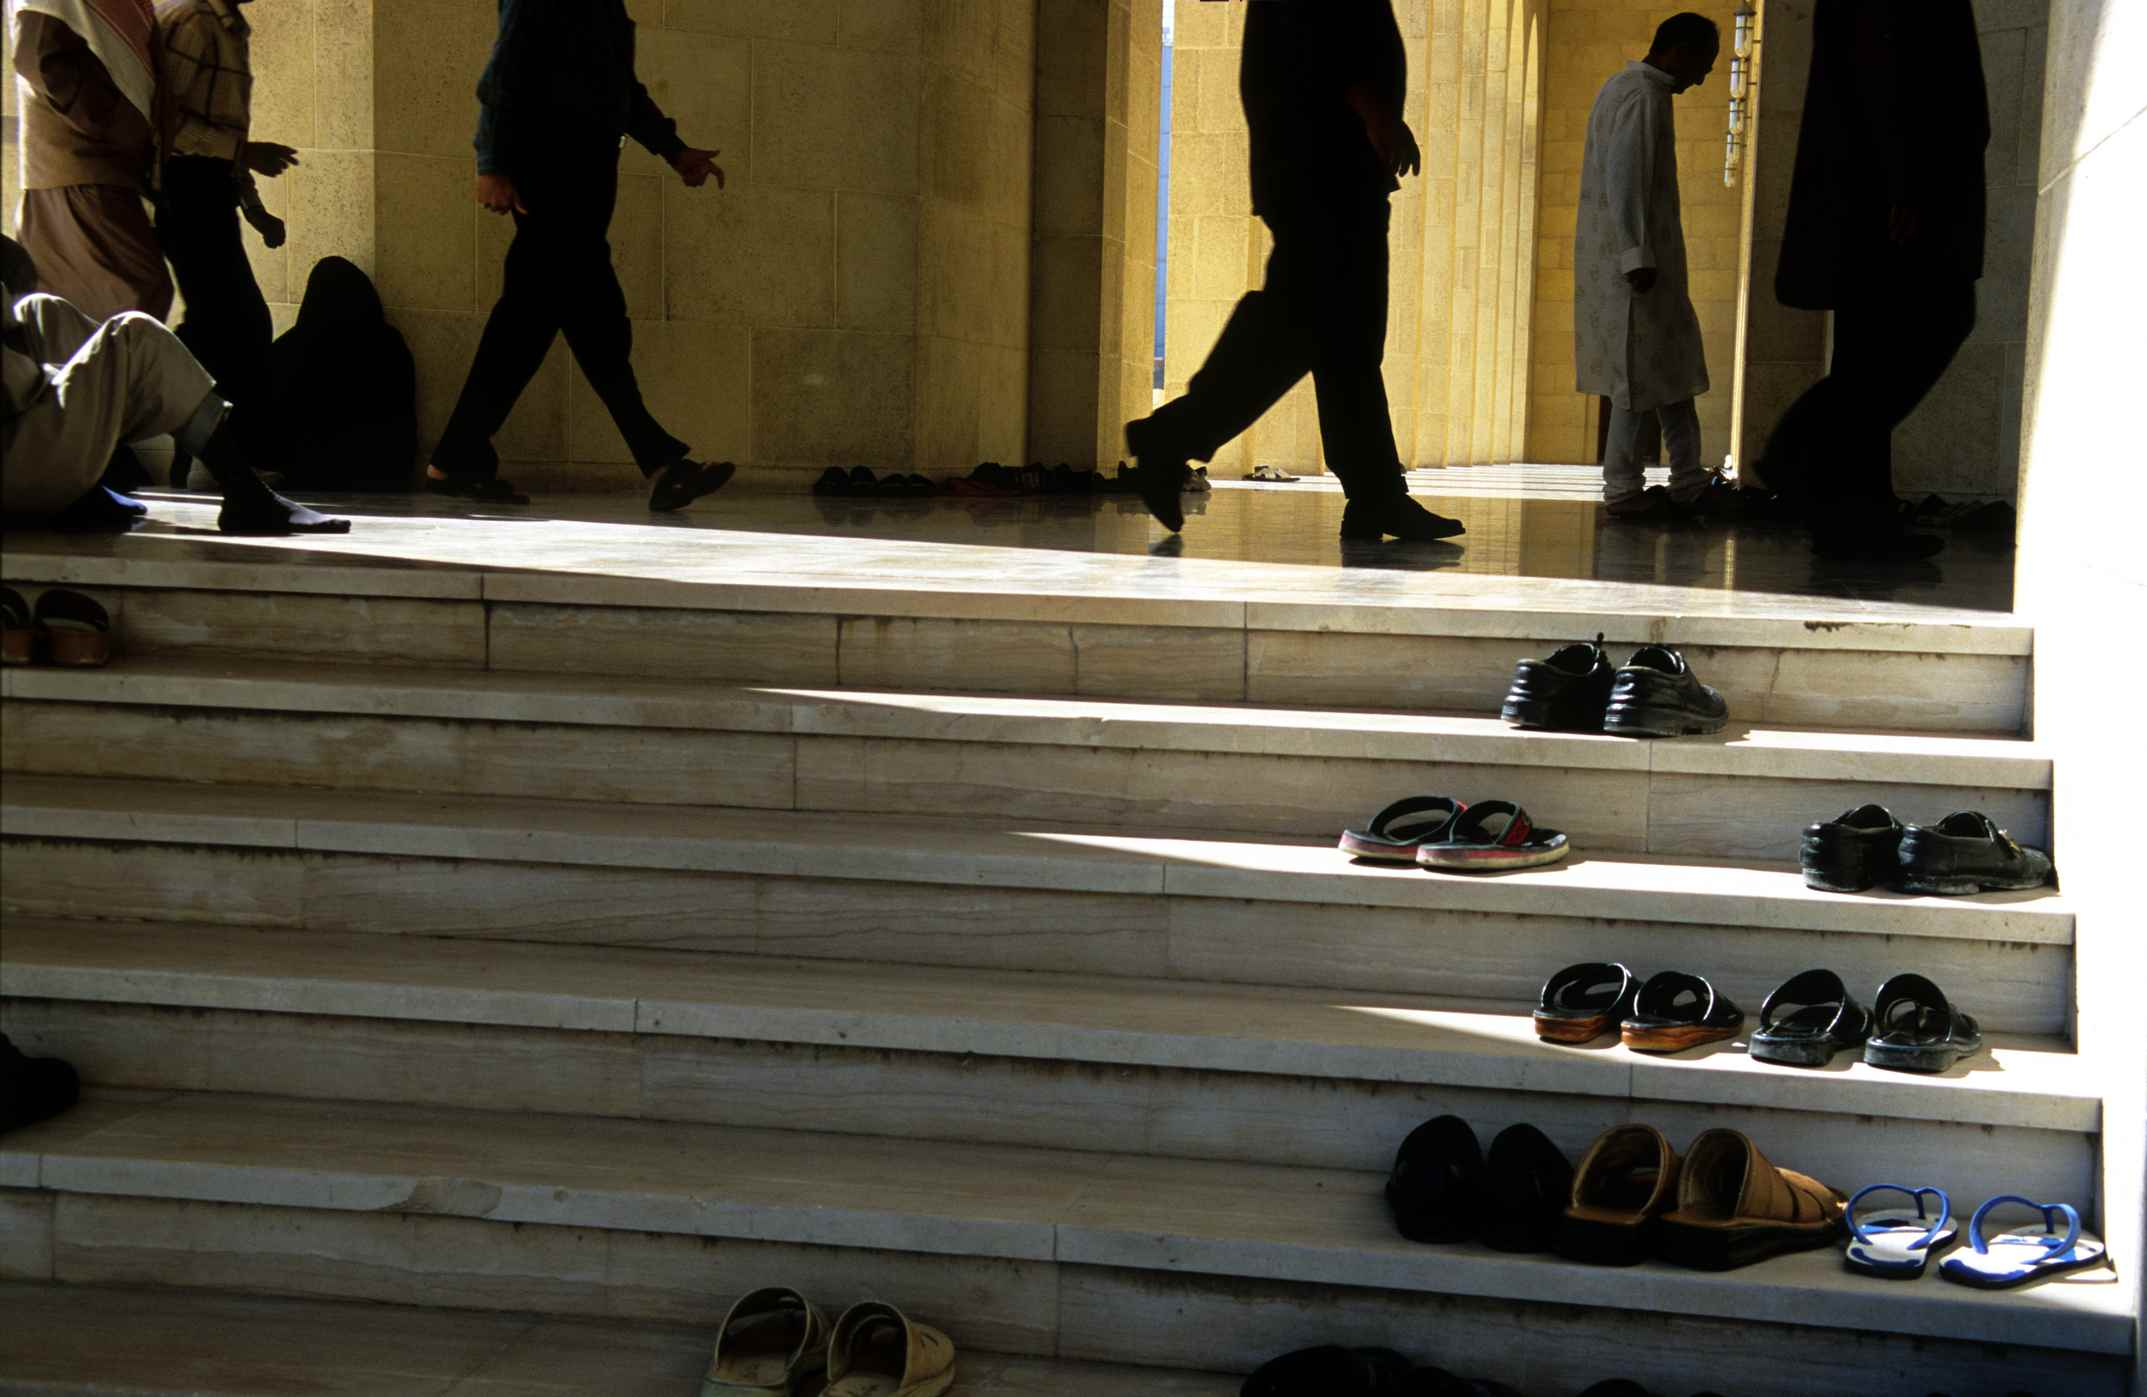 shoes outside mosque entry